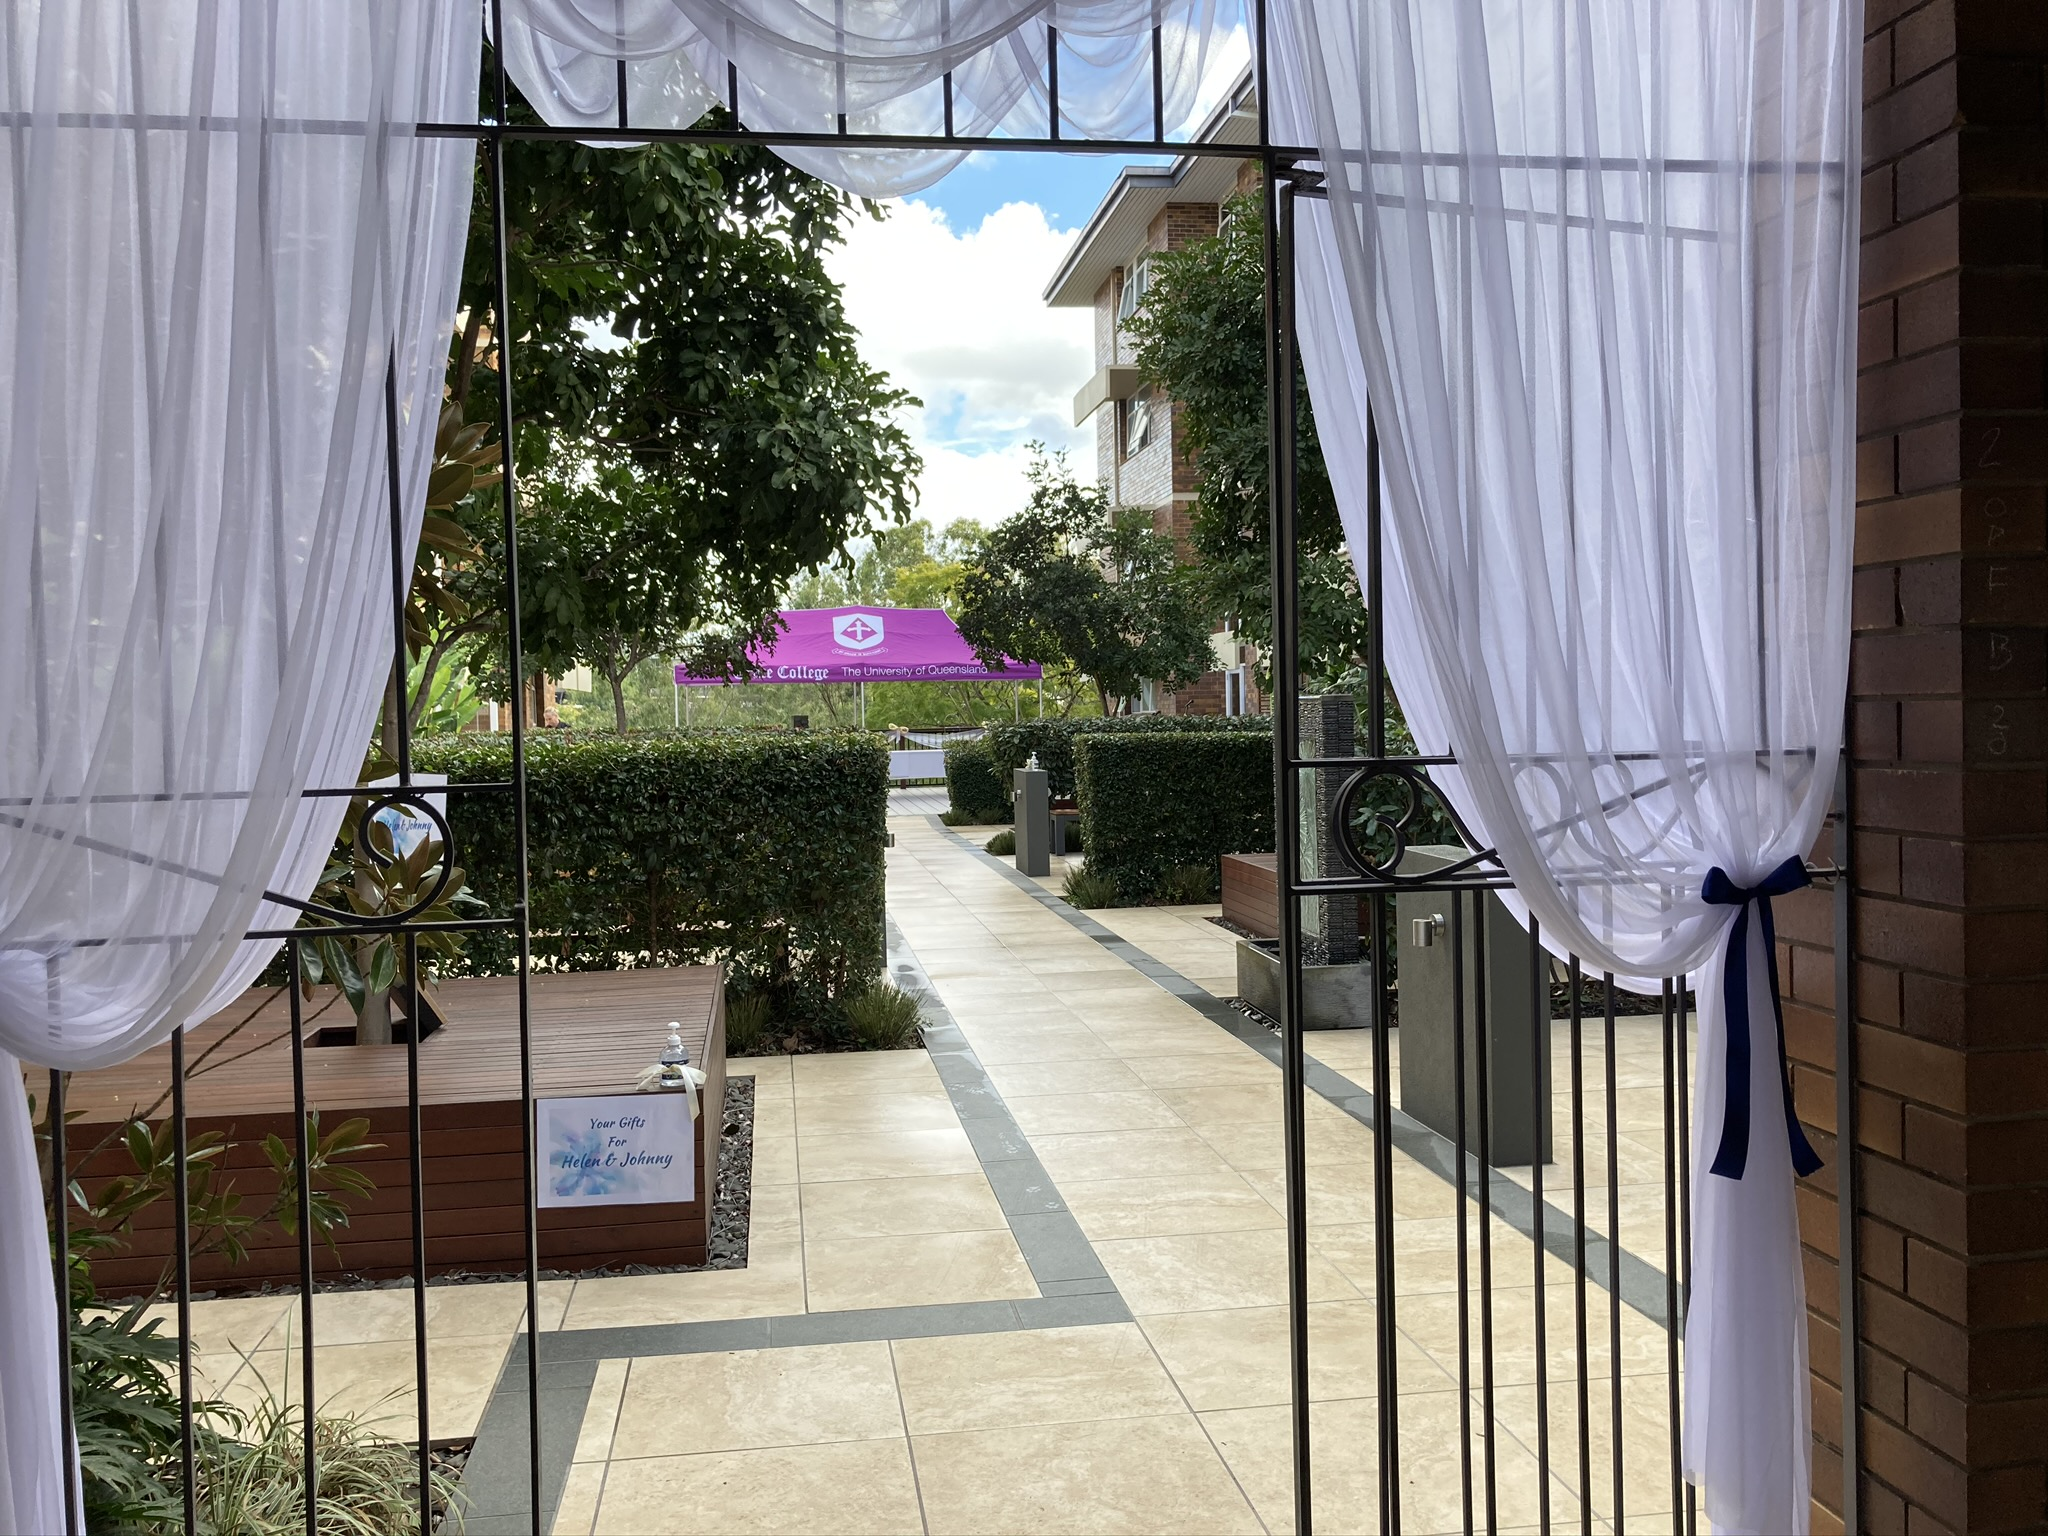 Looking through curtained entry into outdoor area